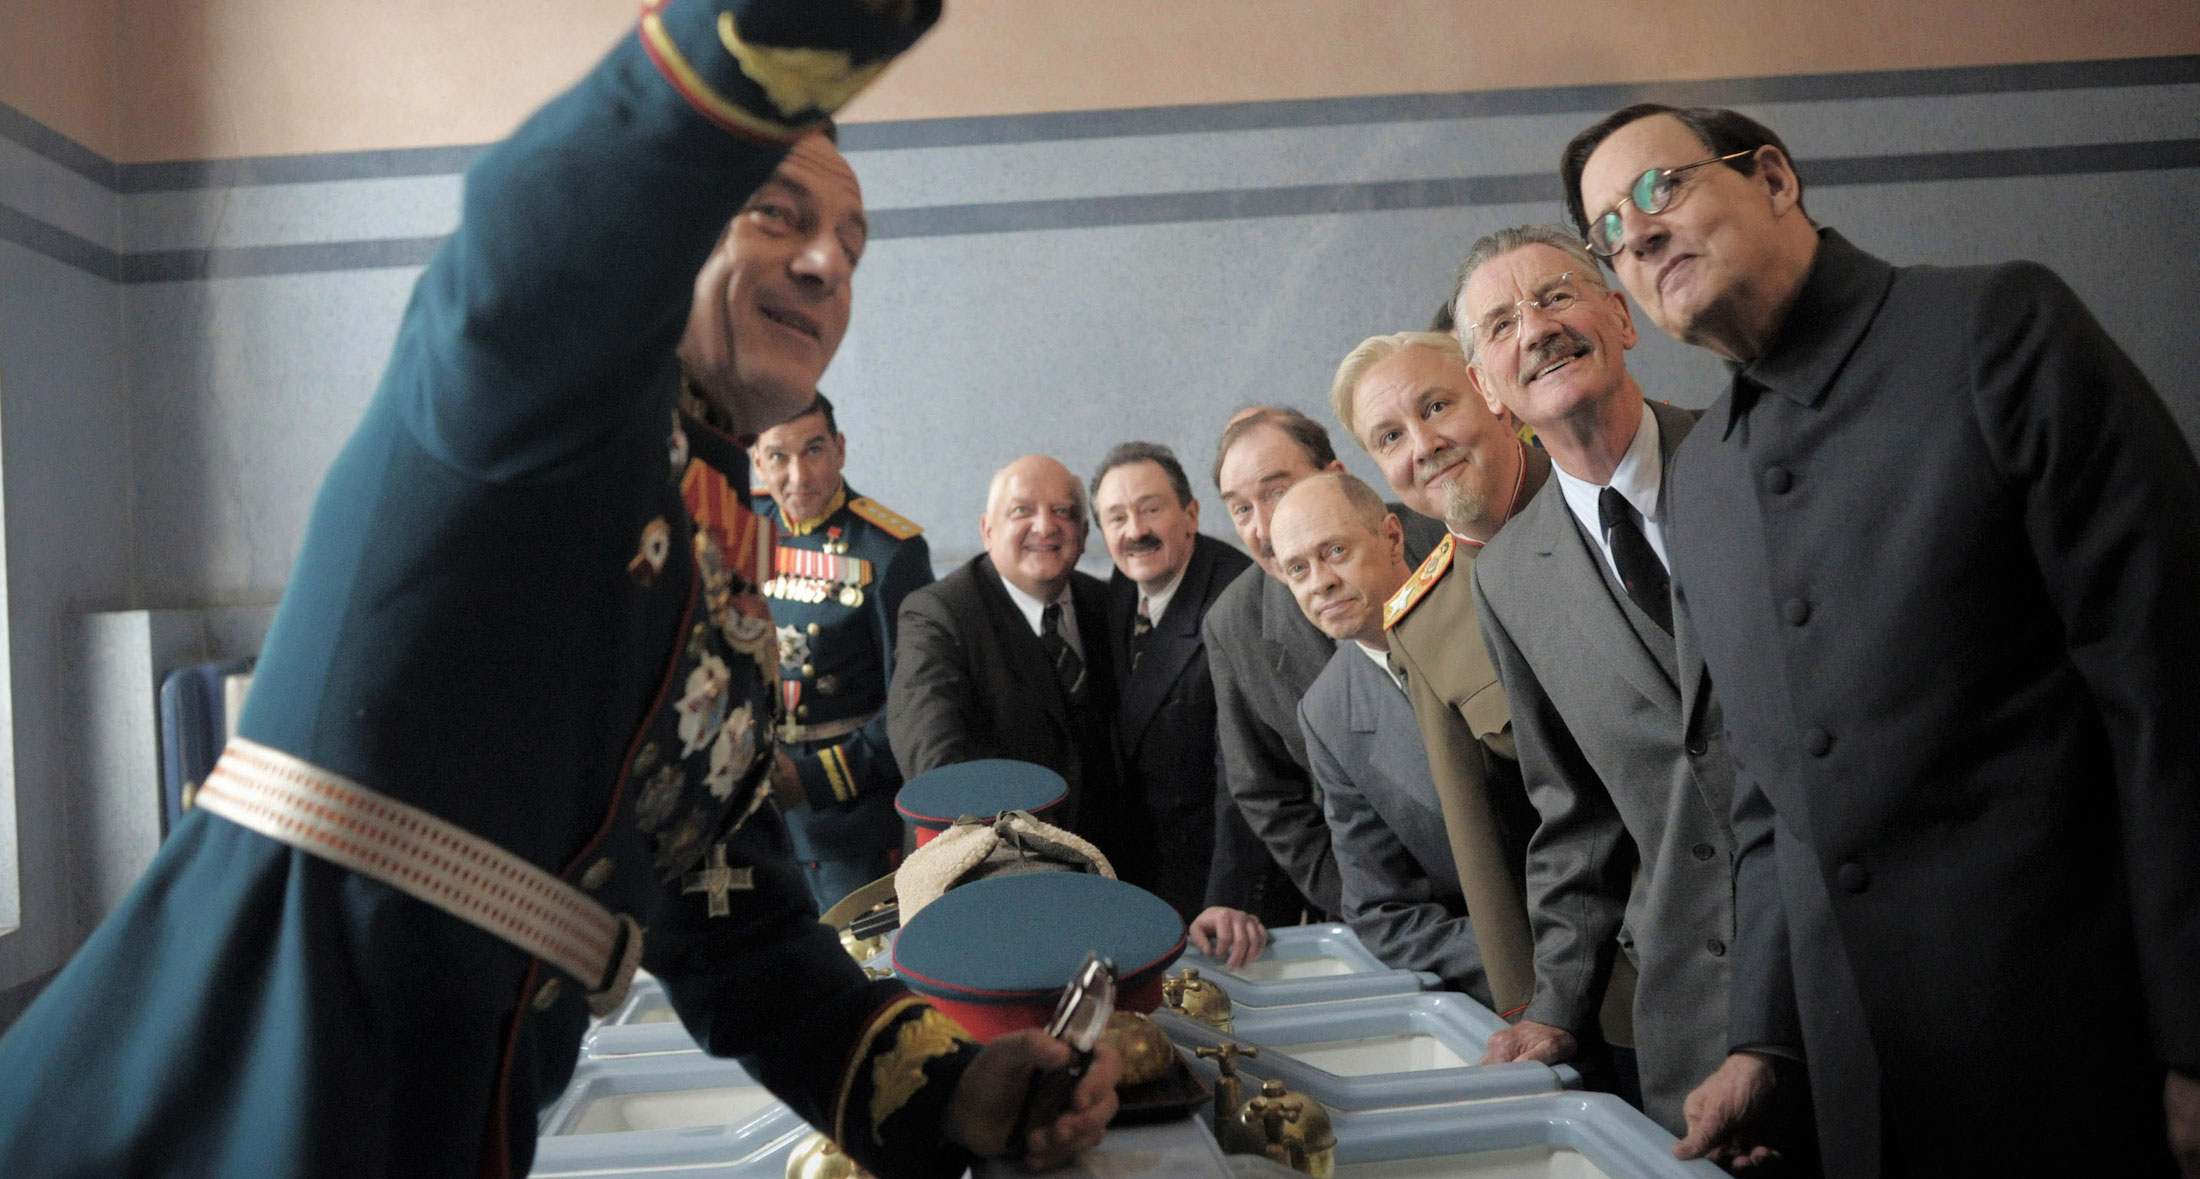 the-death-of-stalin.jpg